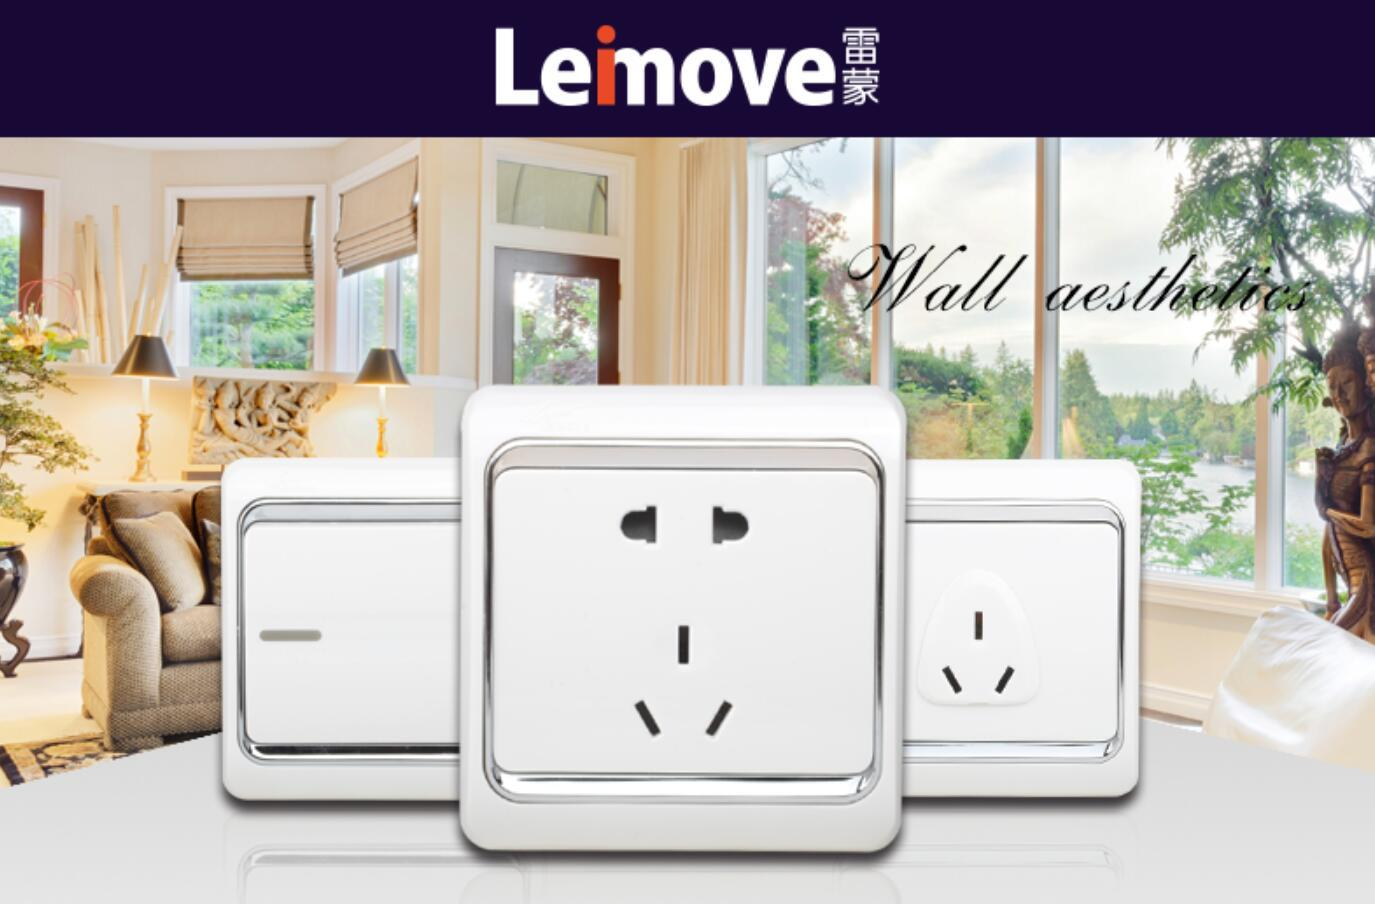 Leimove-Find Light Switch With Outlet Electrical Switches For Home From Leimove Lighting